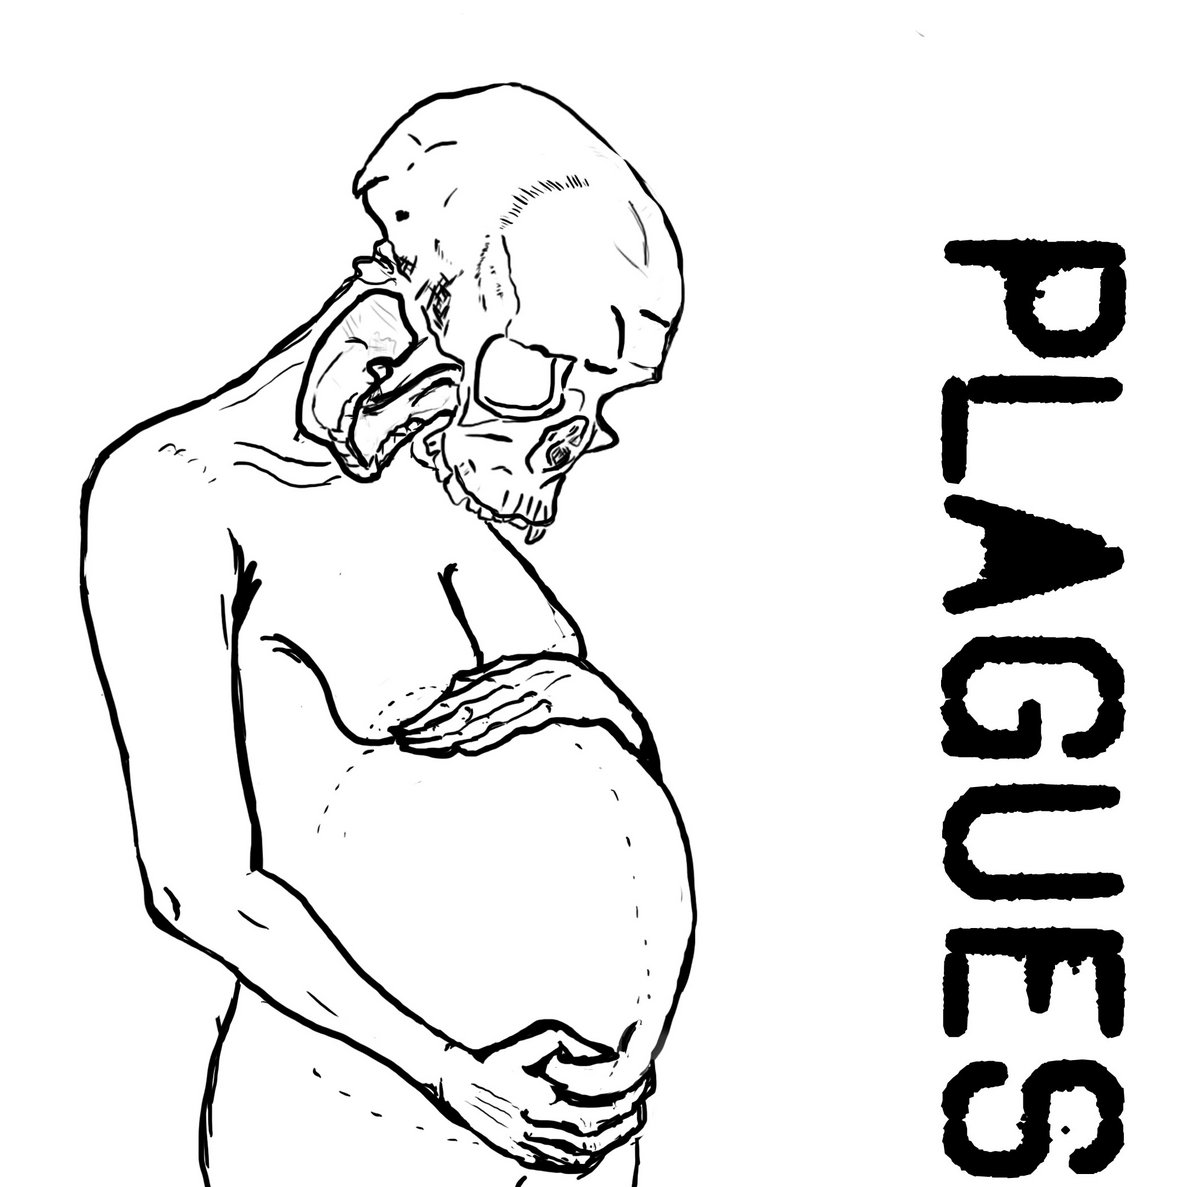 10 Plagues Of Egypt Coloring Pages Coloring Pages